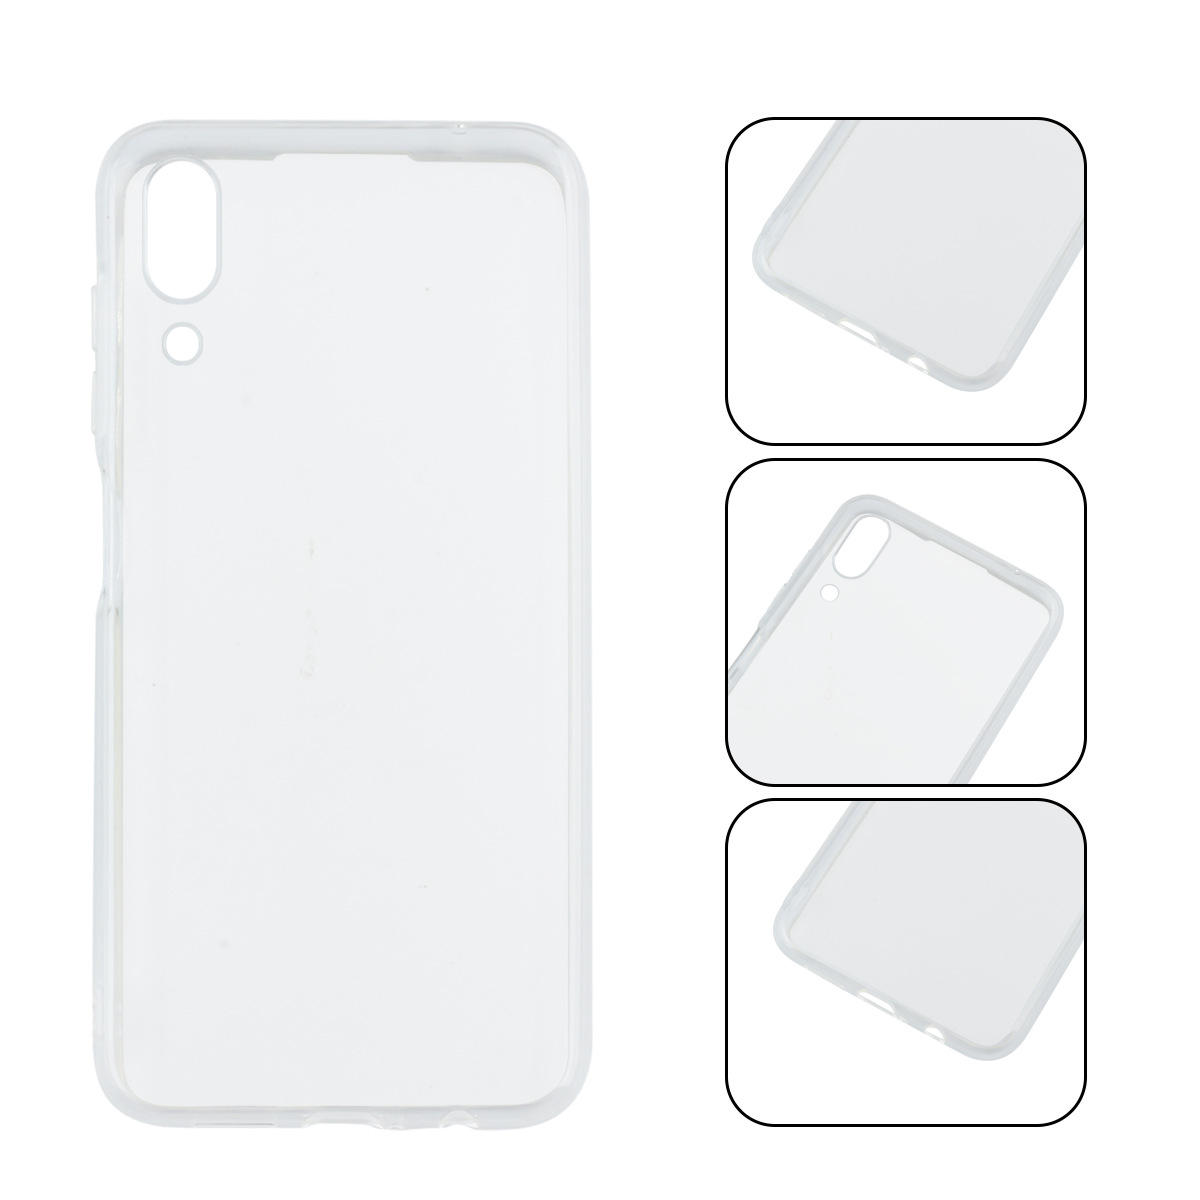 Bakeey Transparent Ultra-thin Hard PC Protective Case For UMIDIGI One Max